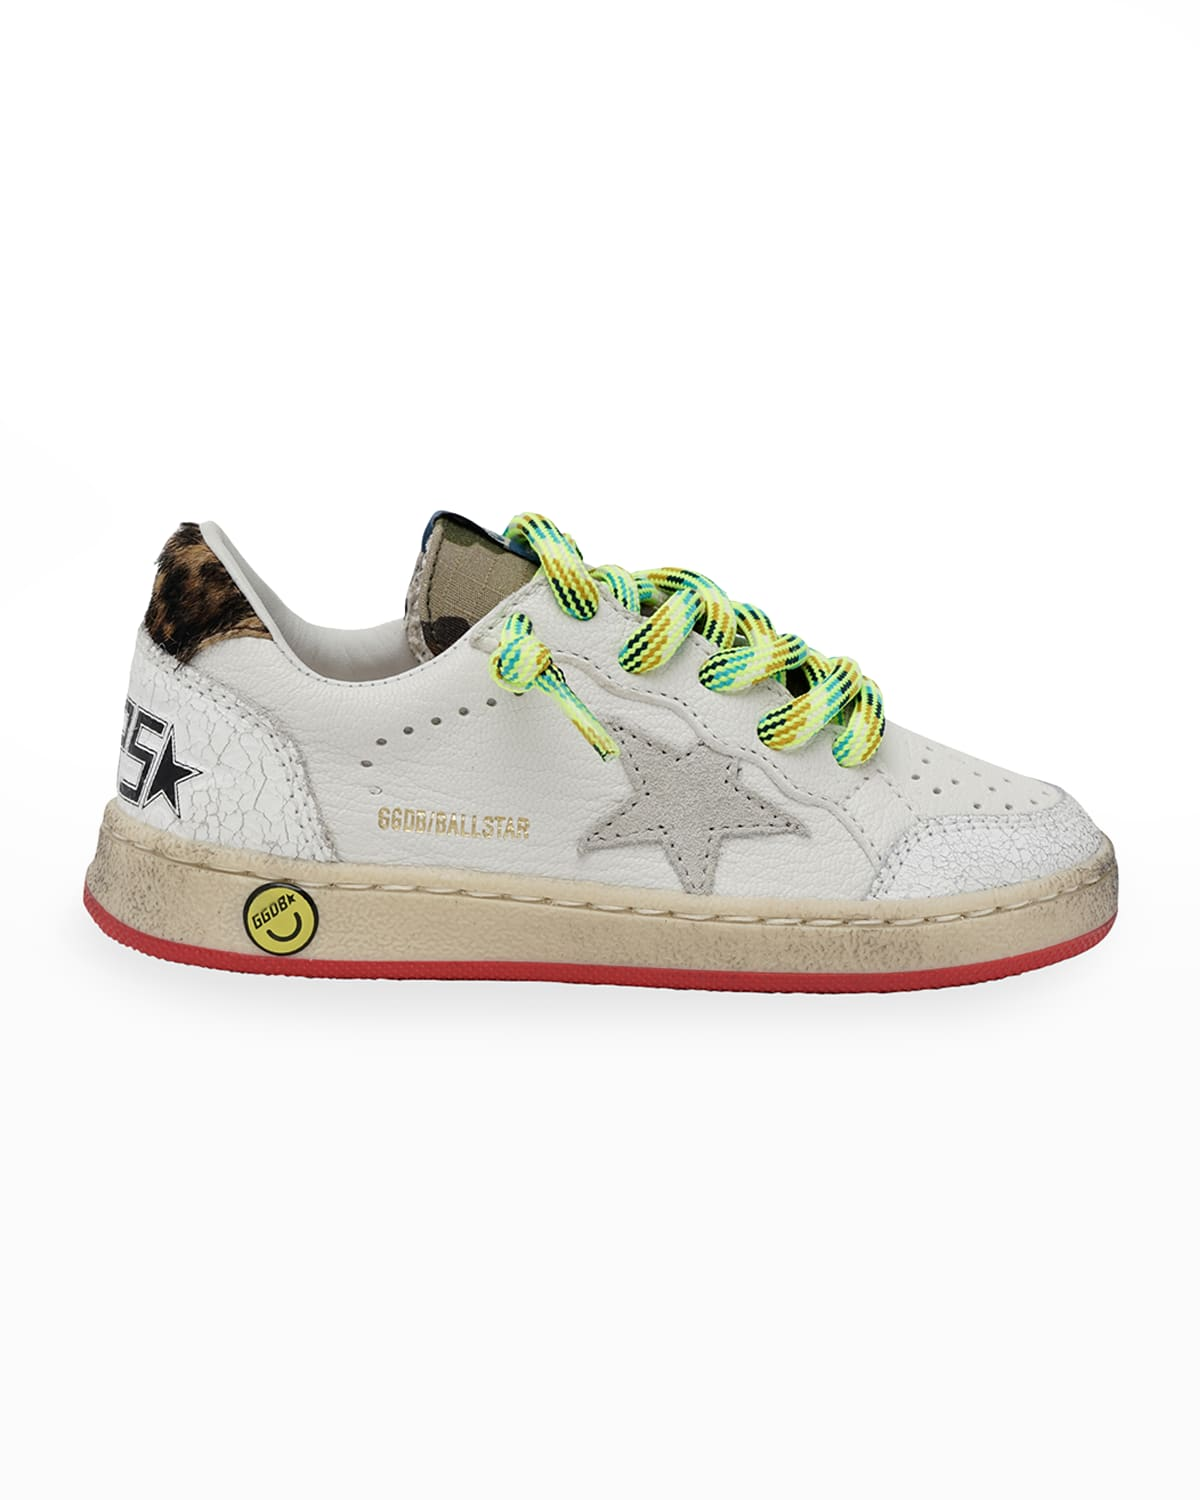 Ball Star Mix-Media Low-Top Sneakers